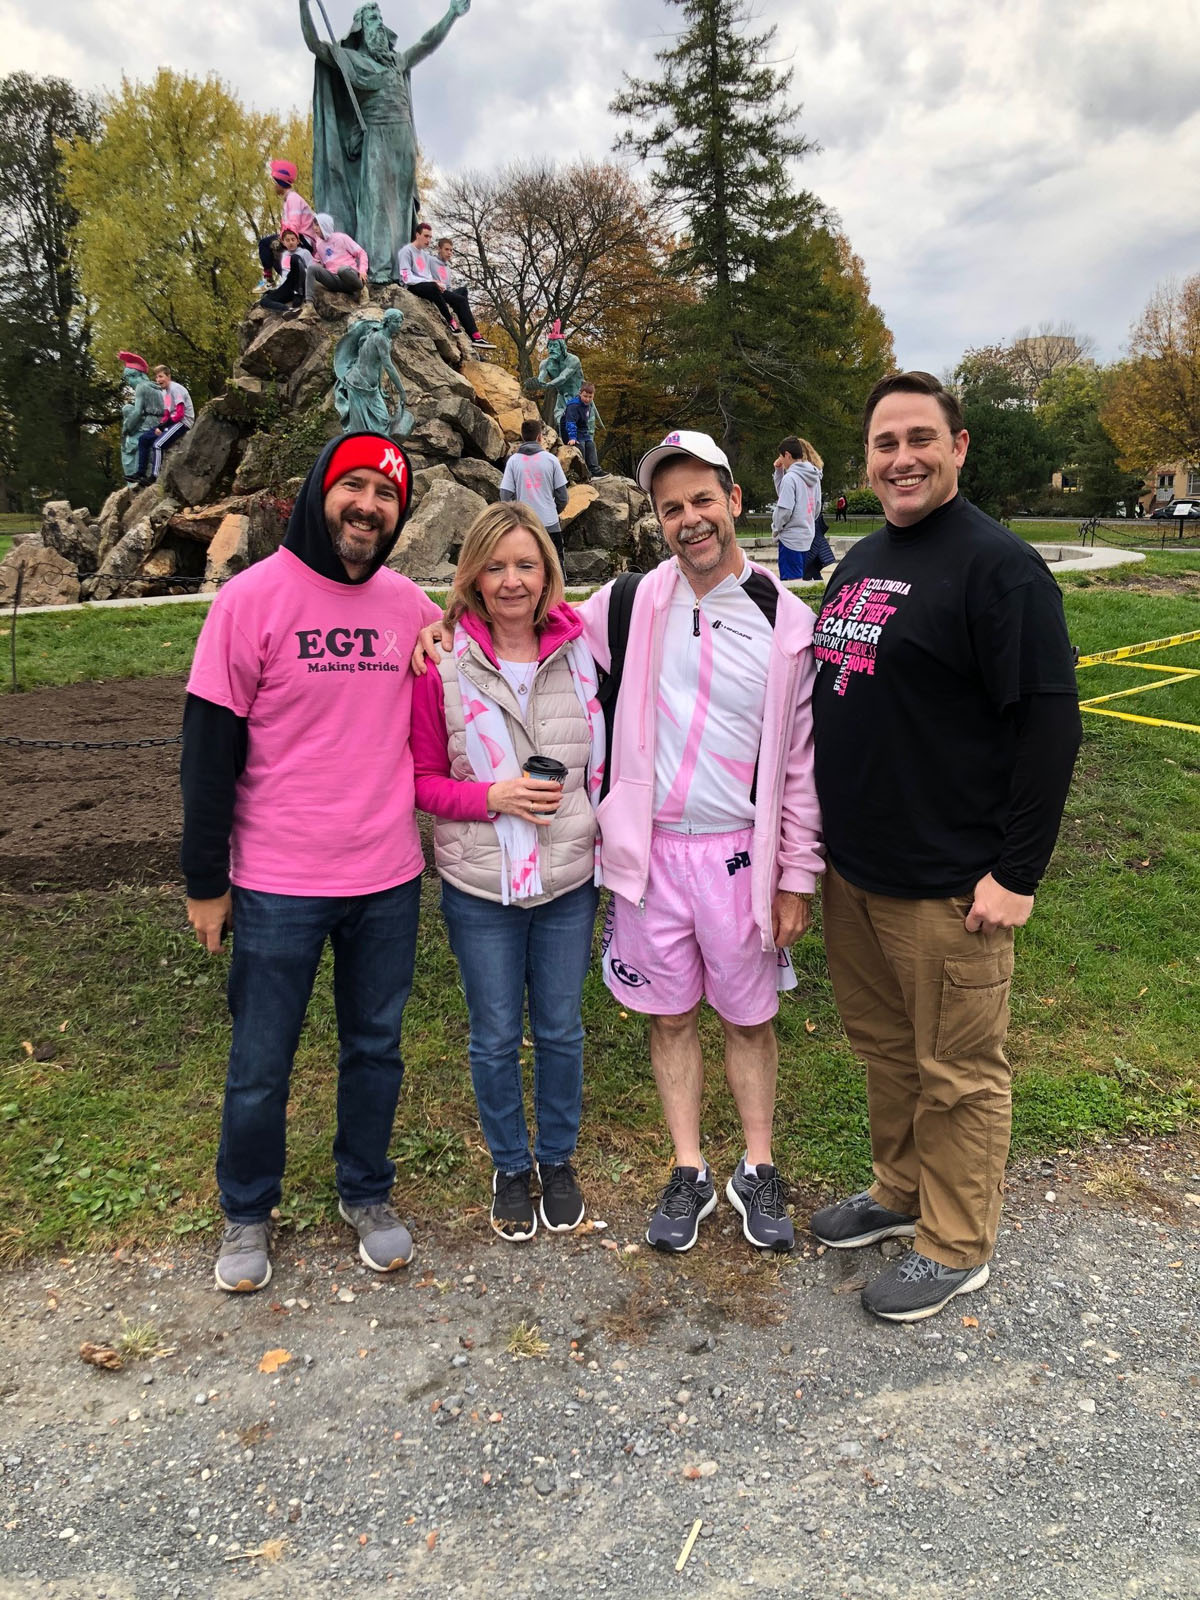 EGTA and SRP union members walking in Making Strides event at Washington Park